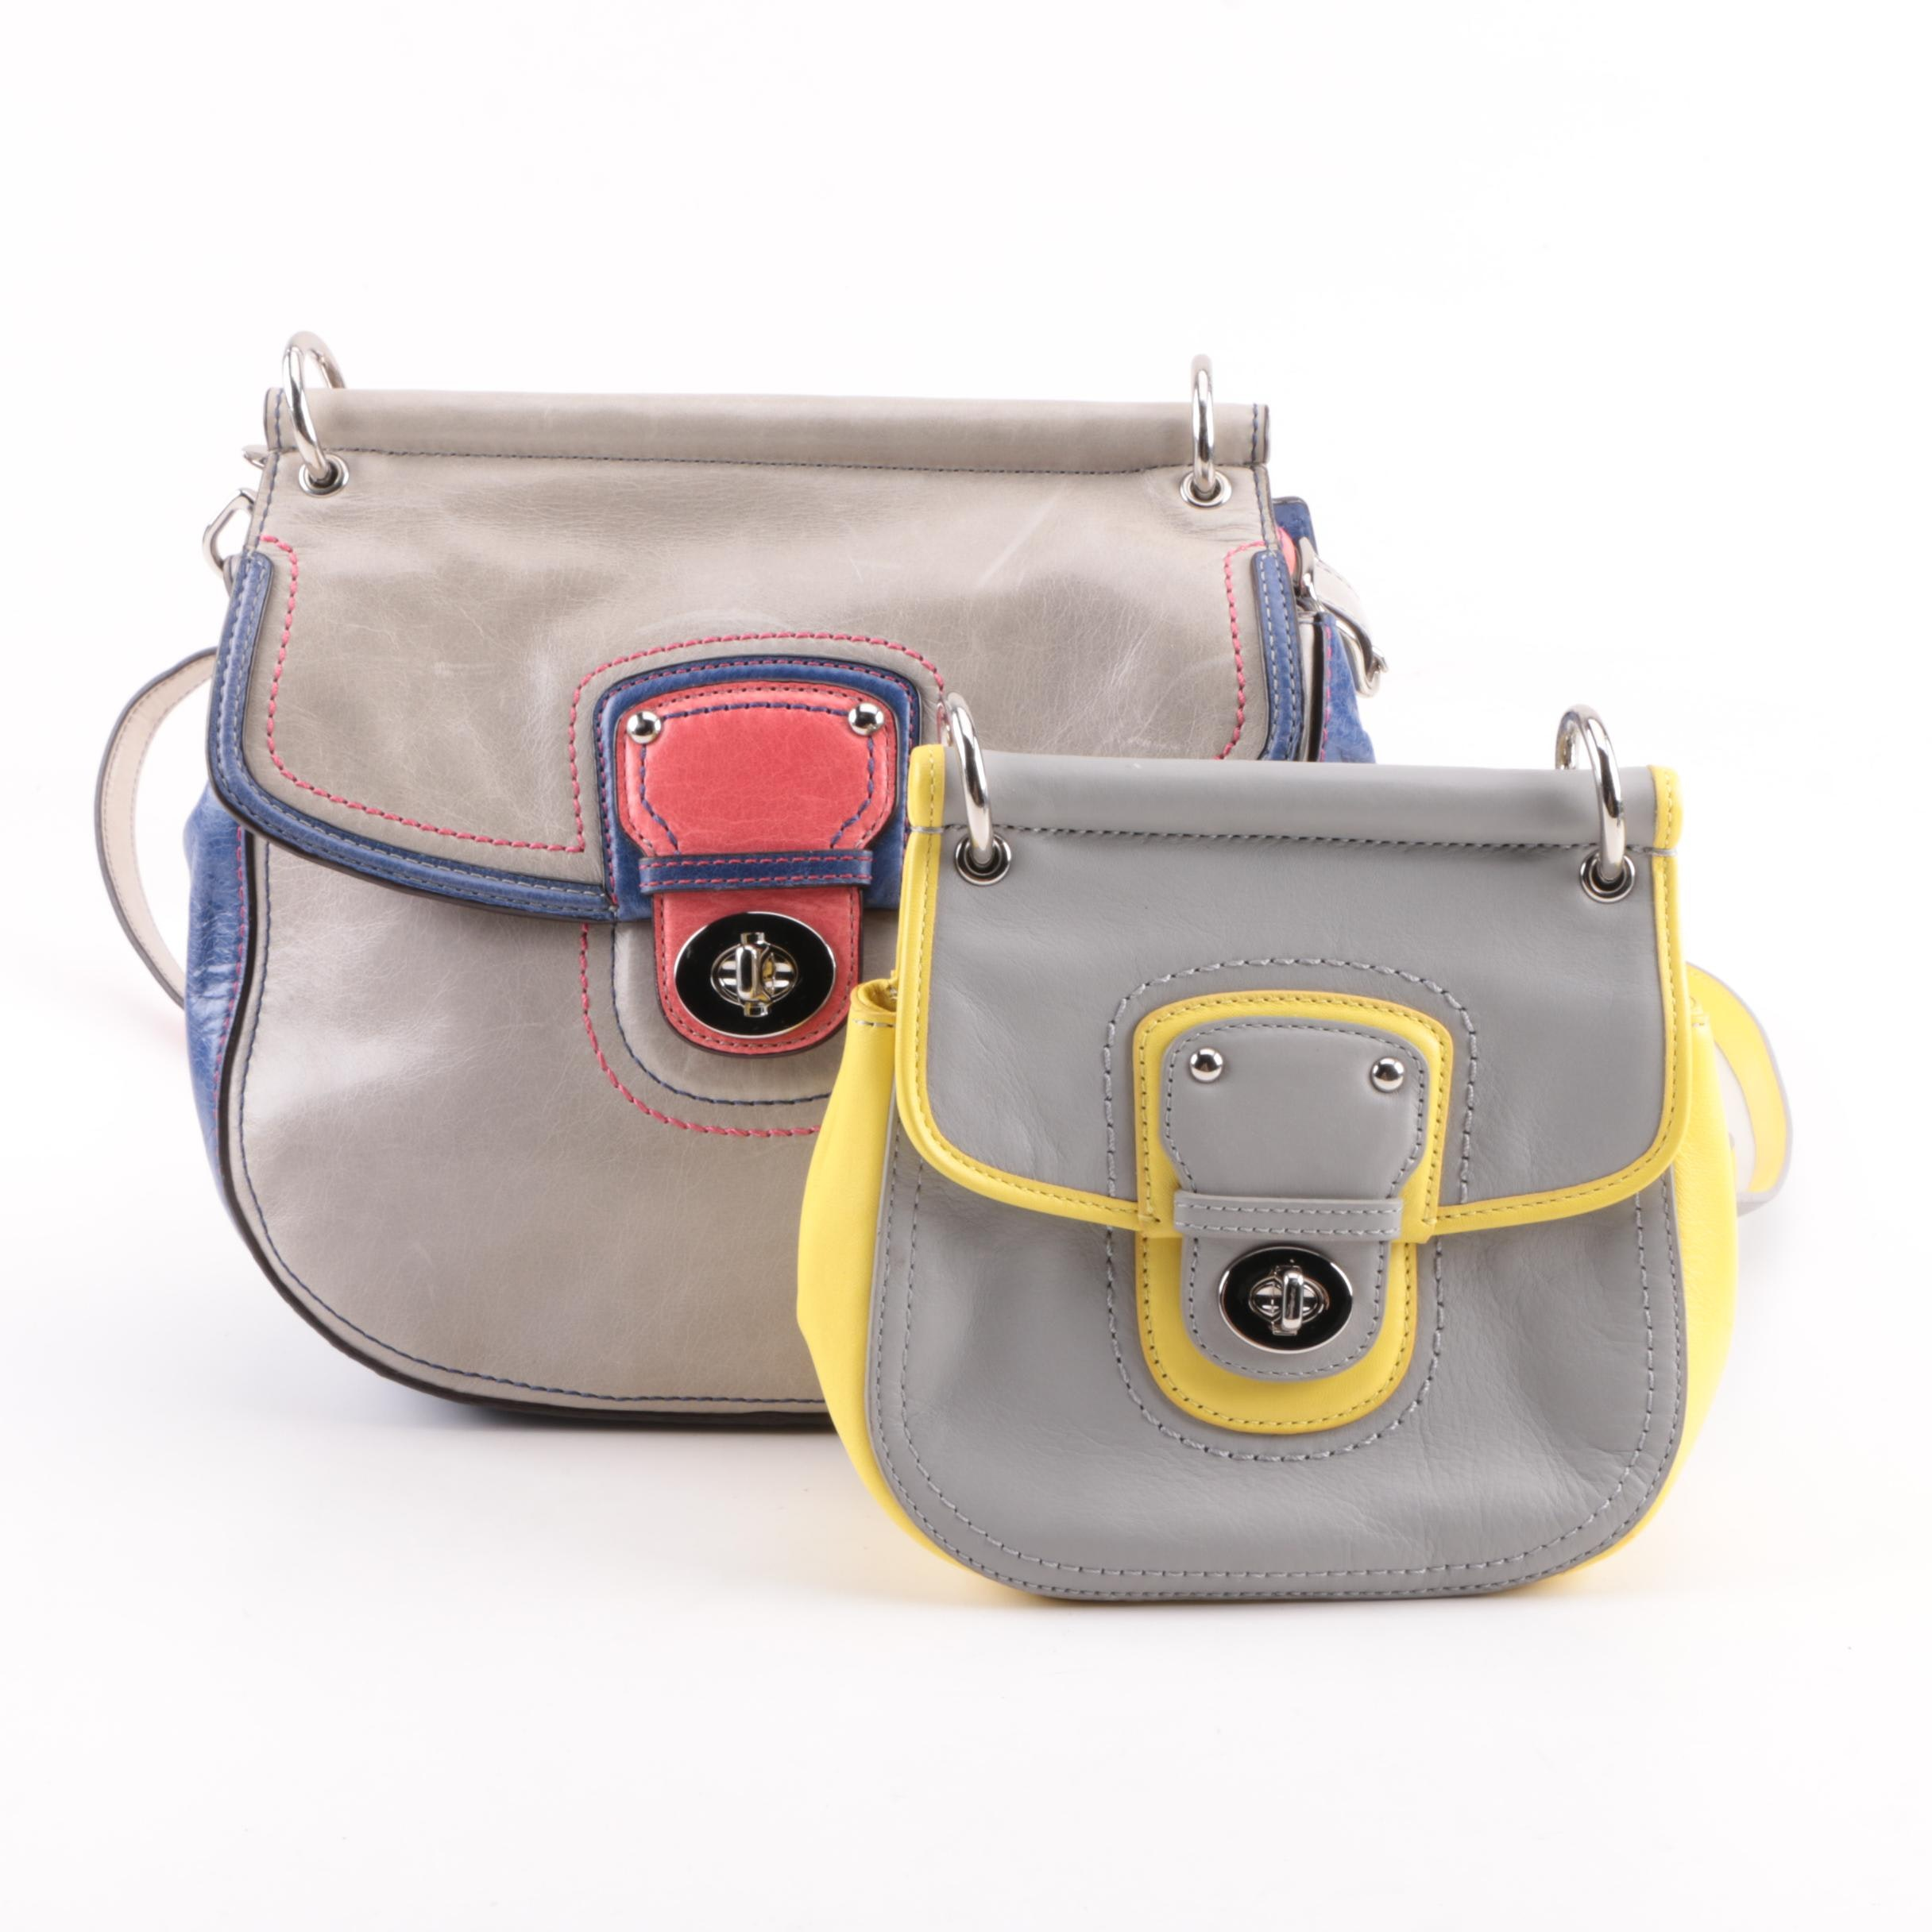 Coach Two-Tone and Tri-Tone Leather Crossbody Front Flap Bags